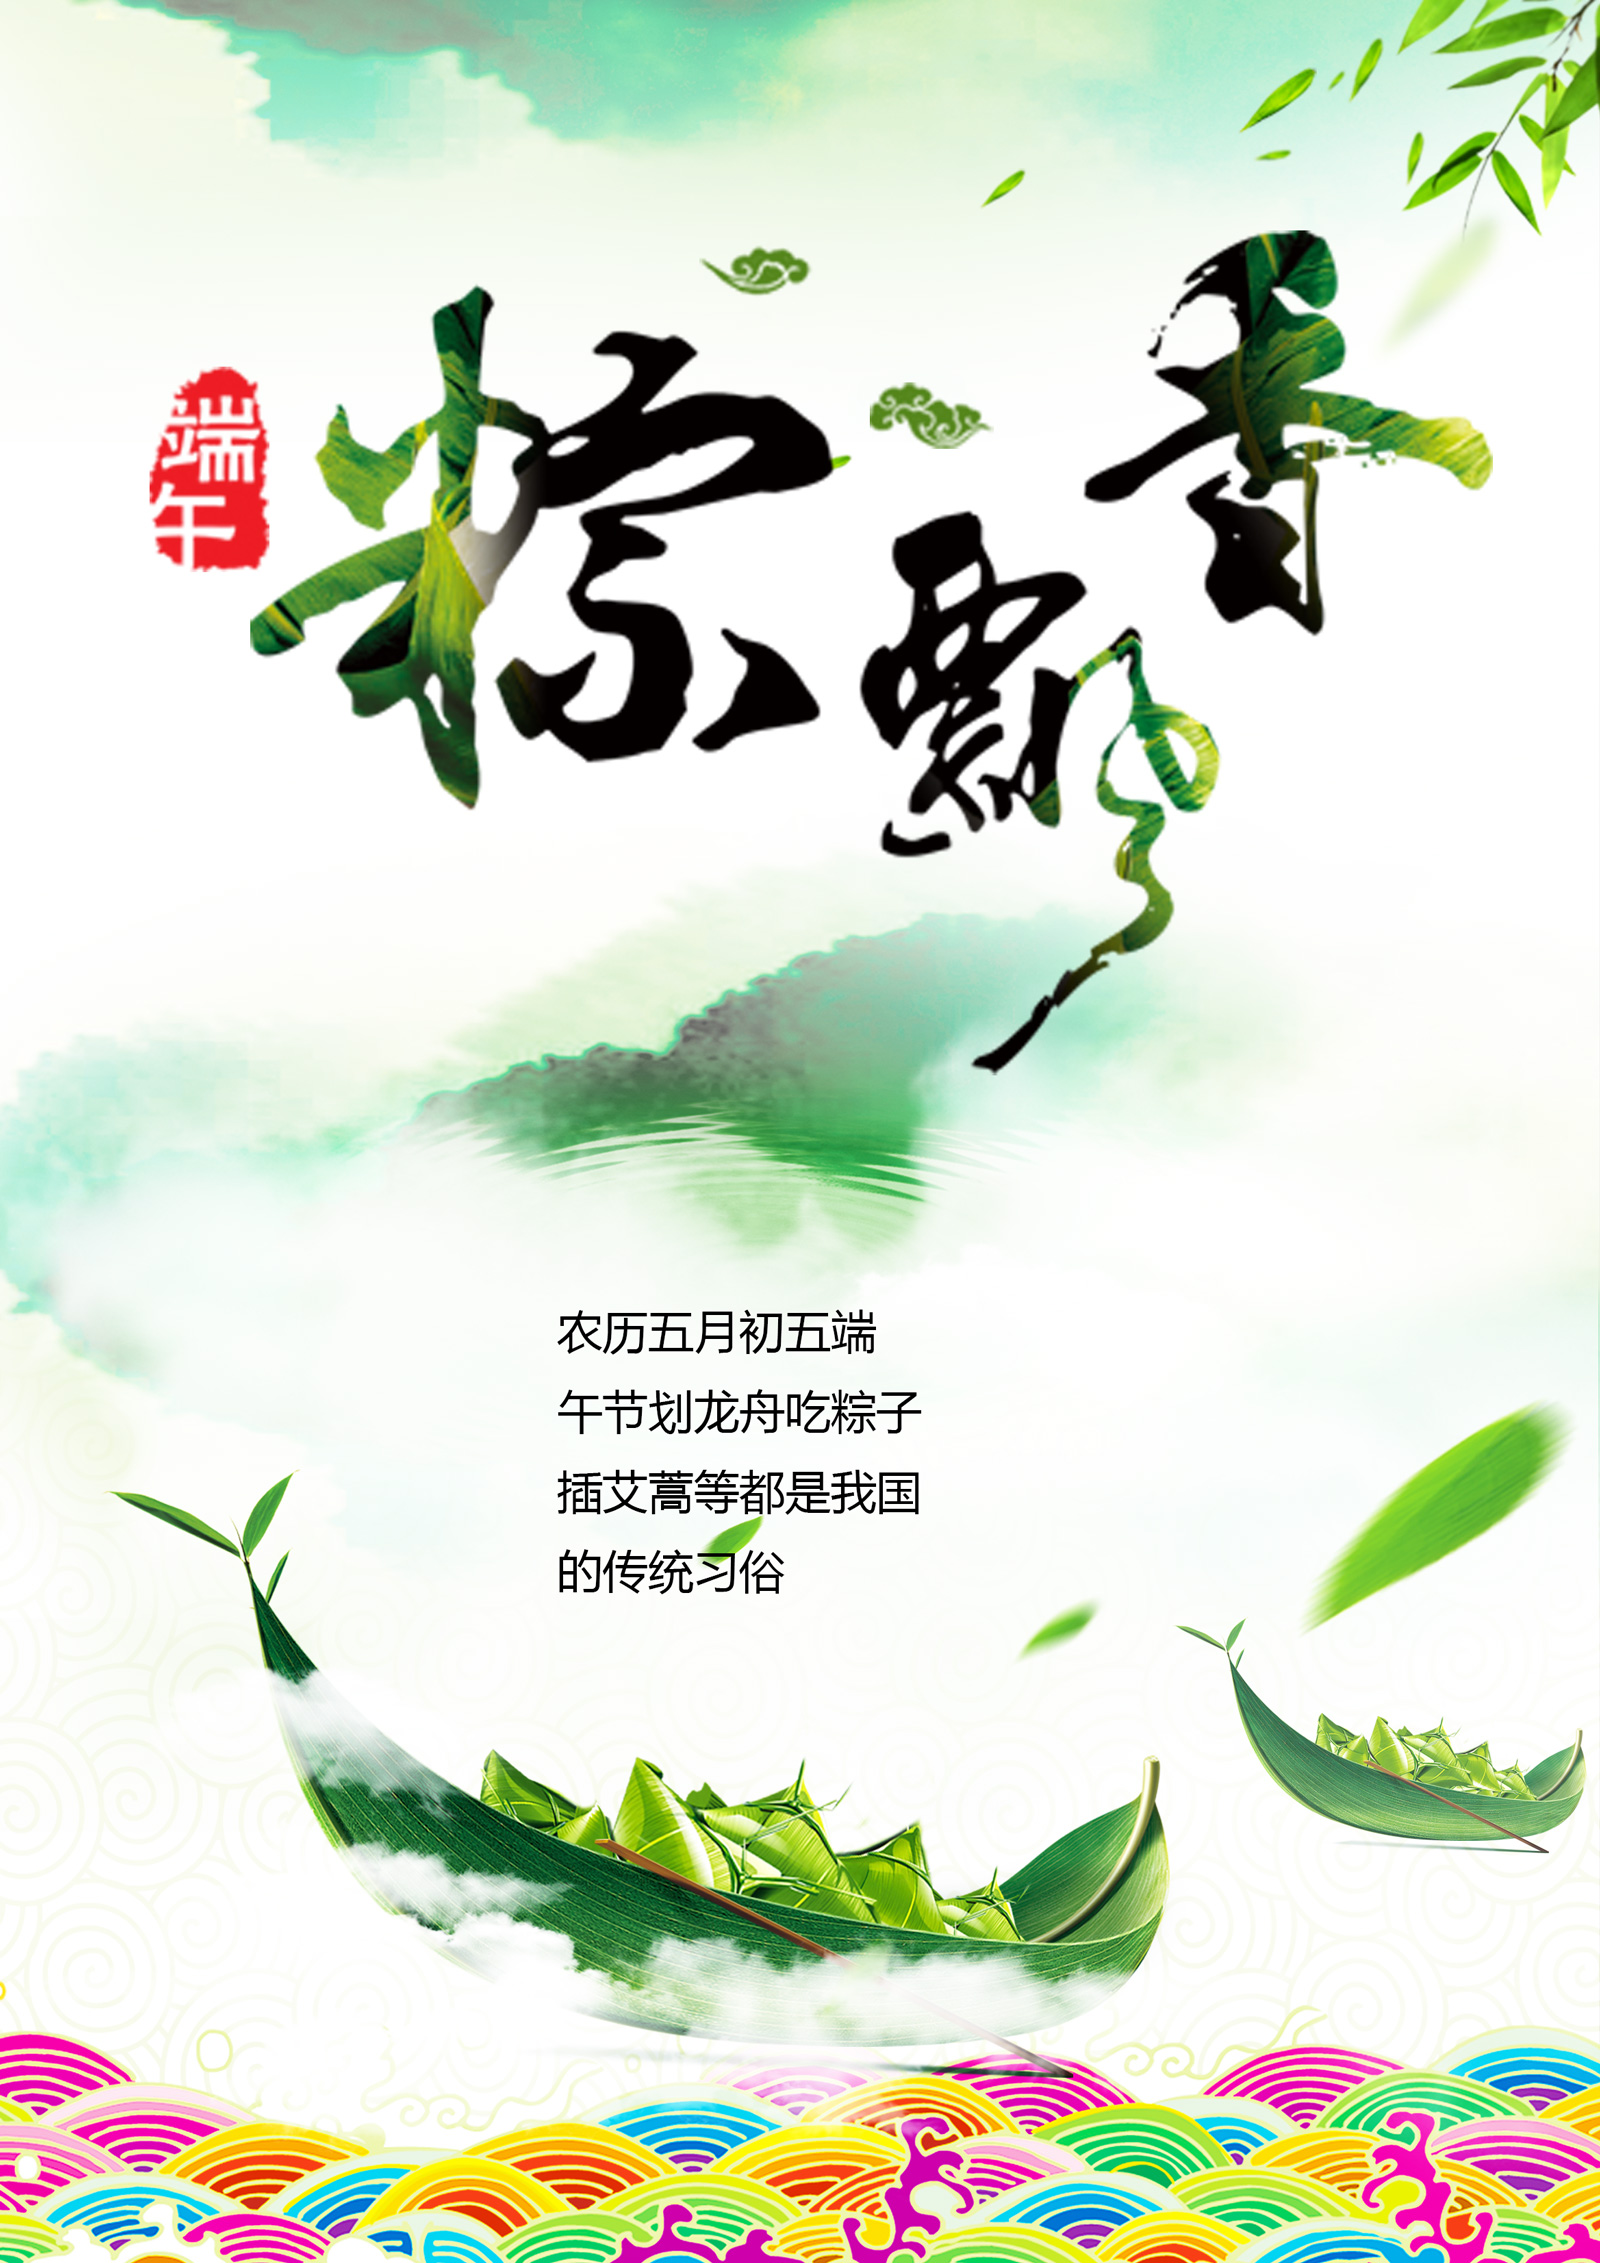 chinesefontdesign.com 2017 05 16 21 26 08 China s traditional festival Dragon Boat Festival poster design PSD File Free Download waves traditional customs the fifth day of May the Dragon Boat Festival poster The Dragon Boat Festival Source Files PSD Material Poster Design fog Festival Materials eat dumplings dumplings draw dragon boat Dragon Boat Festival Promotions Dragon Boat Festival Flyer Dragon Boat Festival Advertising Advertising Design Template